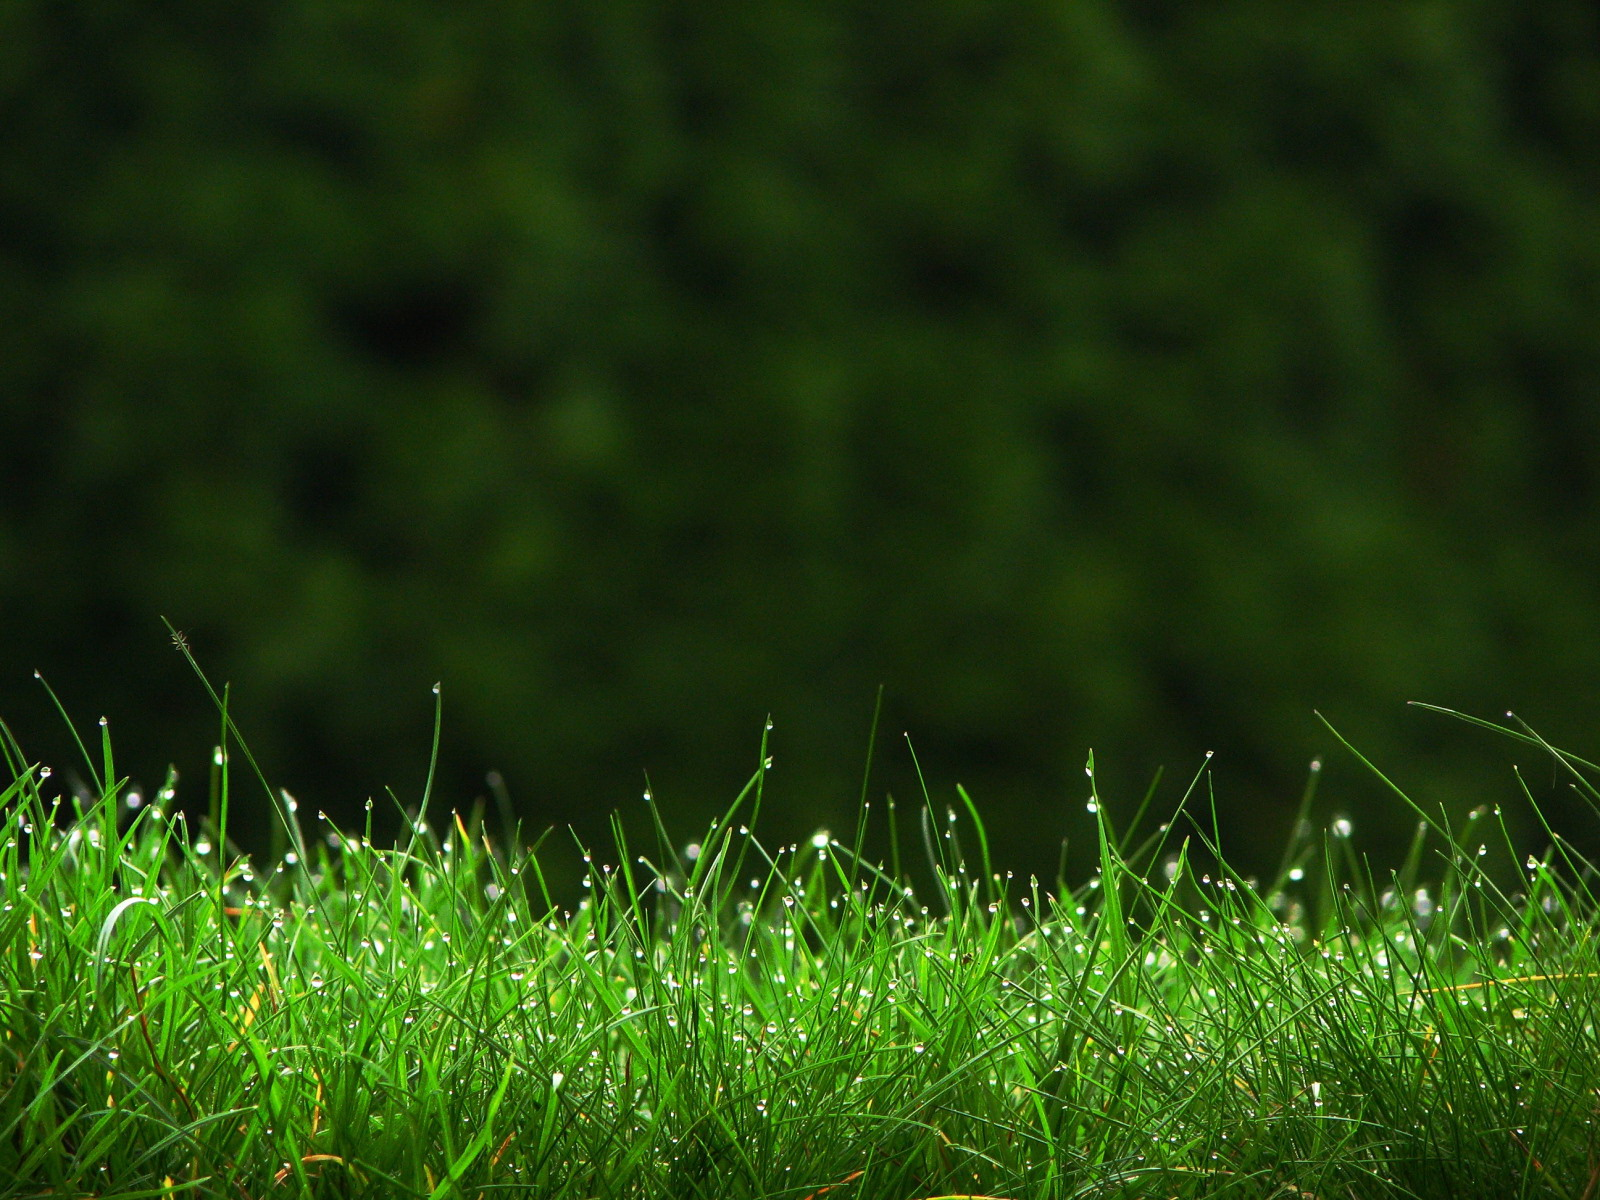 http://3.bp.blogspot.com/_ACWjg6QS7yc/S2ufuhEju1I/AAAAAAAAALQ/-jEhSpN_i-o/s1600/Grass-in-the-Morning-Nature-HD-Wallpaper.jpg